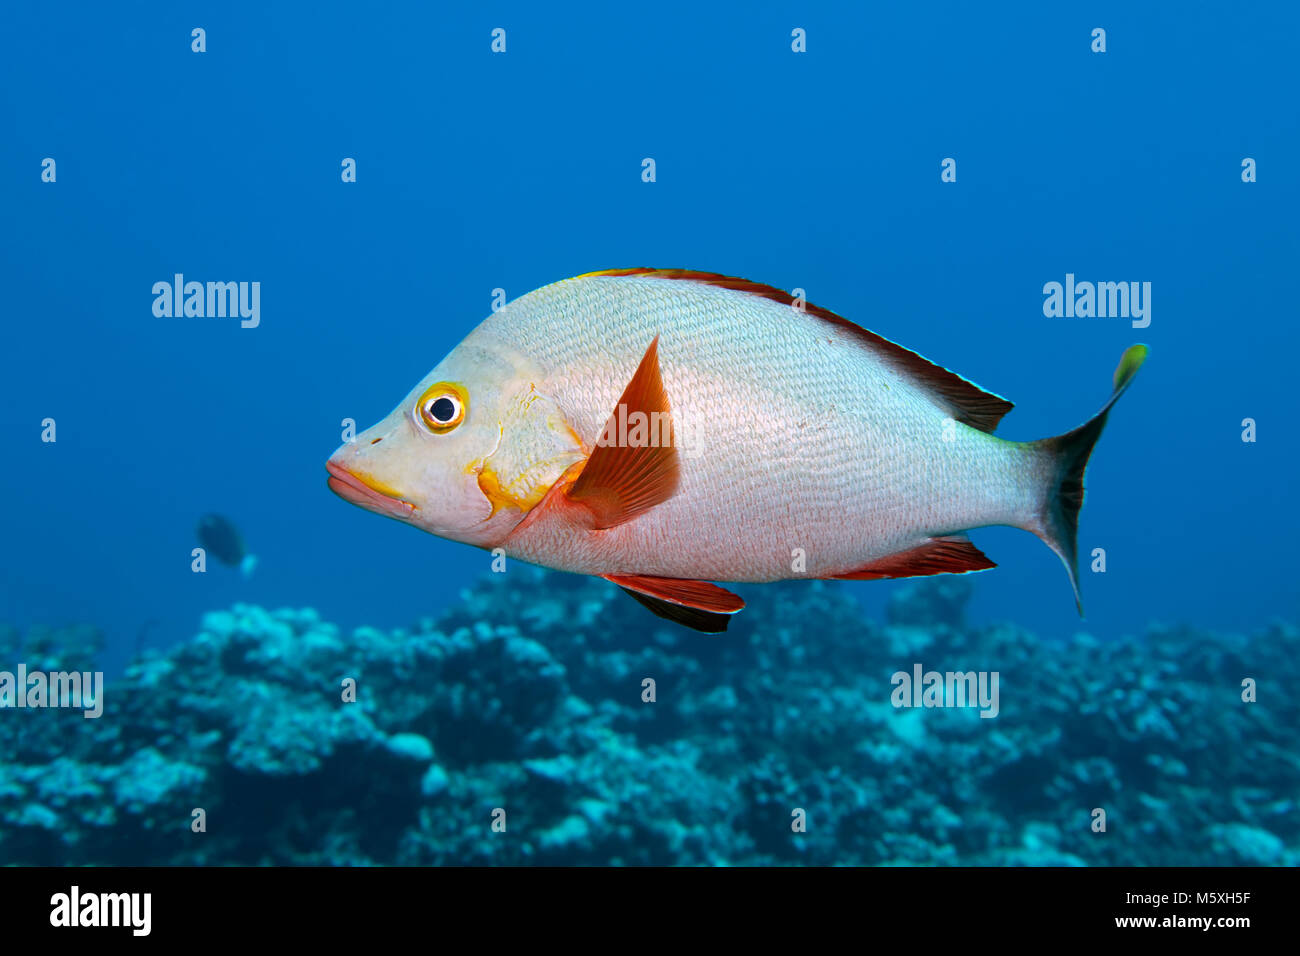 Humpback Red Snapper (Lutjanus gibbus), swims over coral reef, Pacific Ocean, Moorea, Windward Islands, French Polynesia Stock Photo